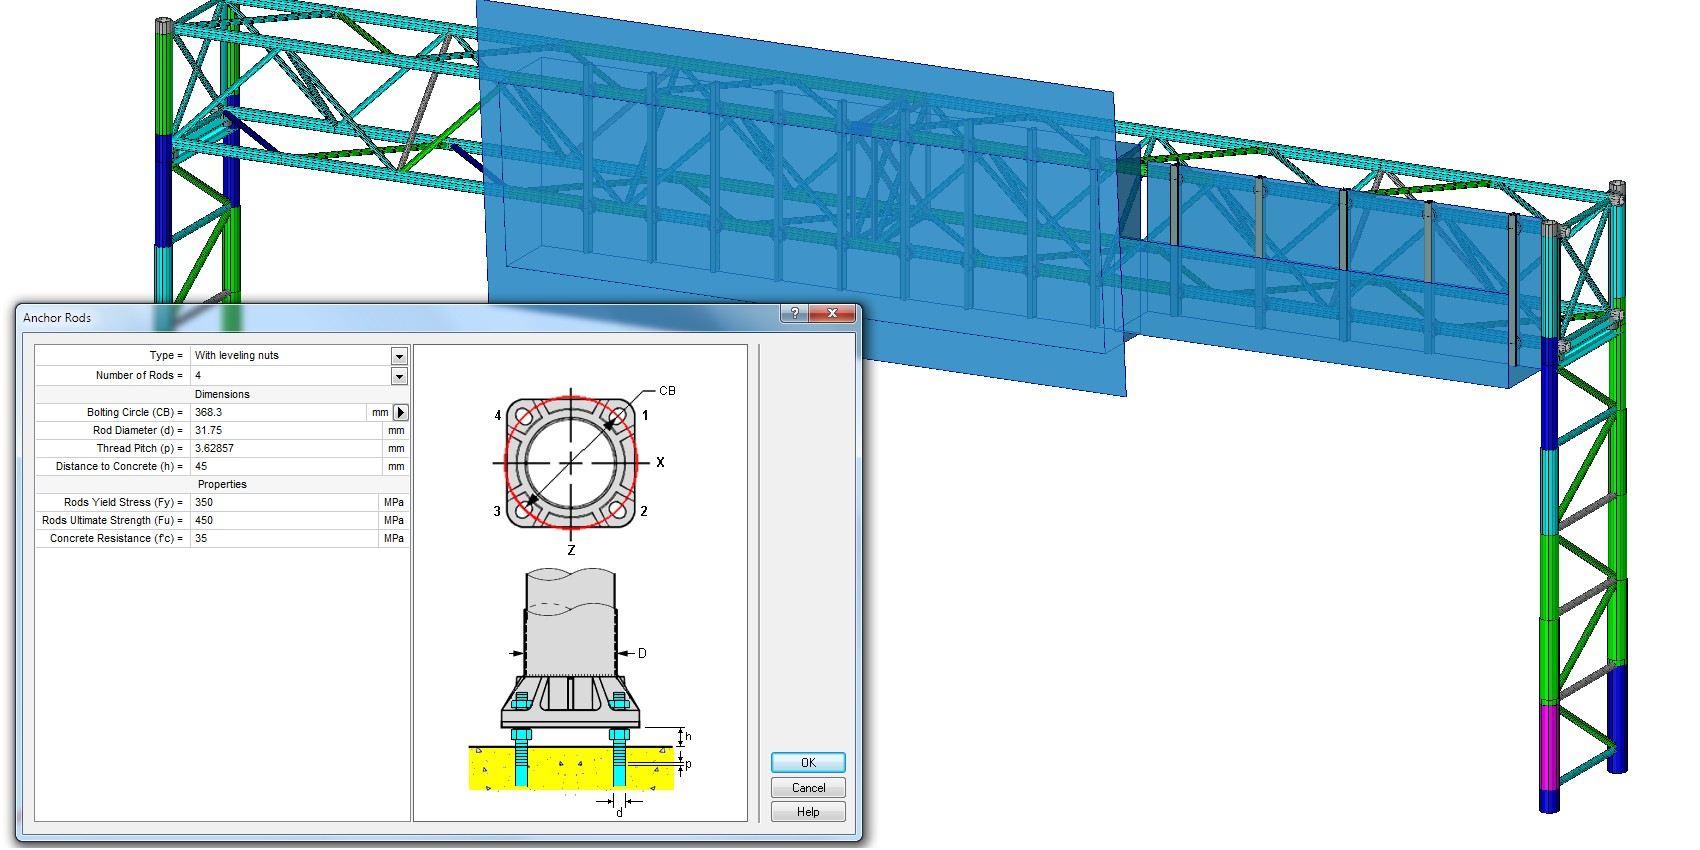 OVERHEAD SIGN STRUCTURES ANALYSIS AND DESIGN - SAFI